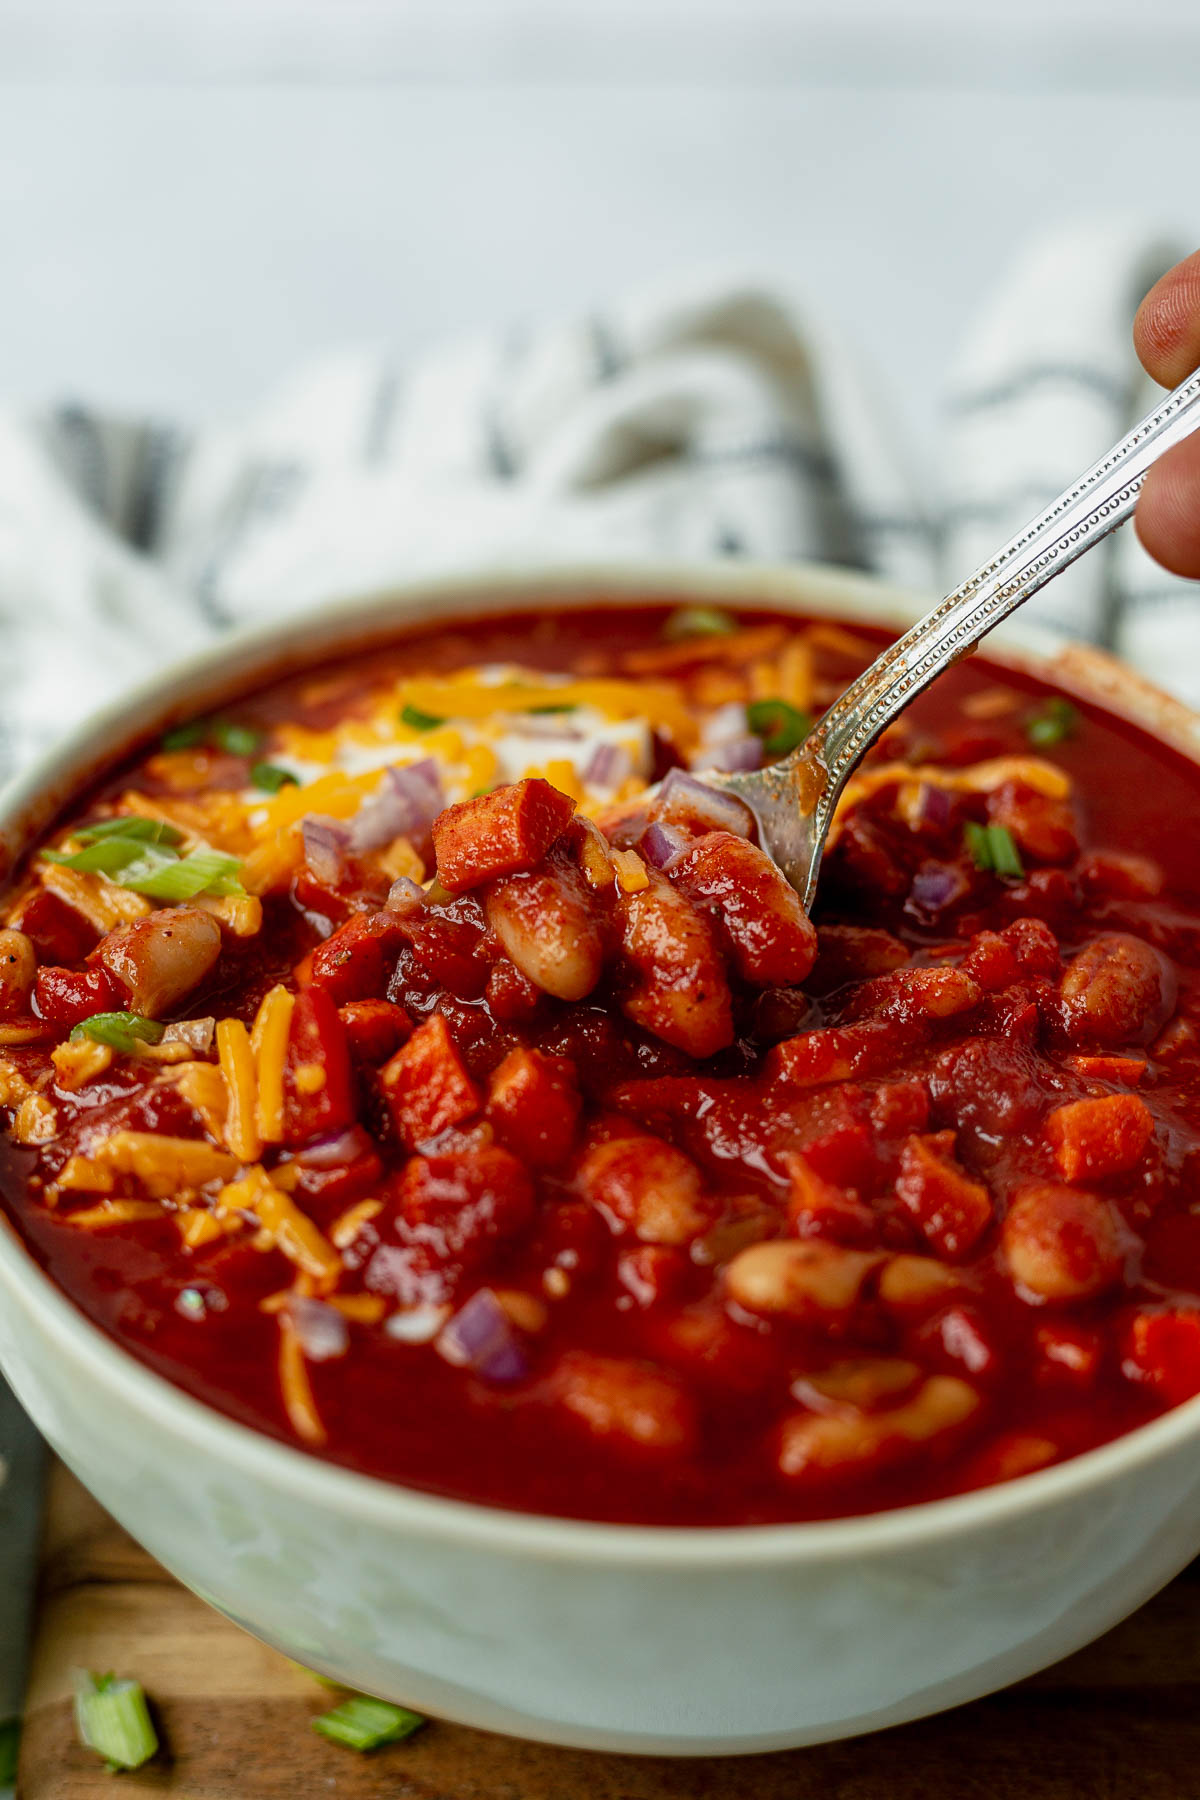 spoon scooping out a bite of slow cooker vegetarian chili